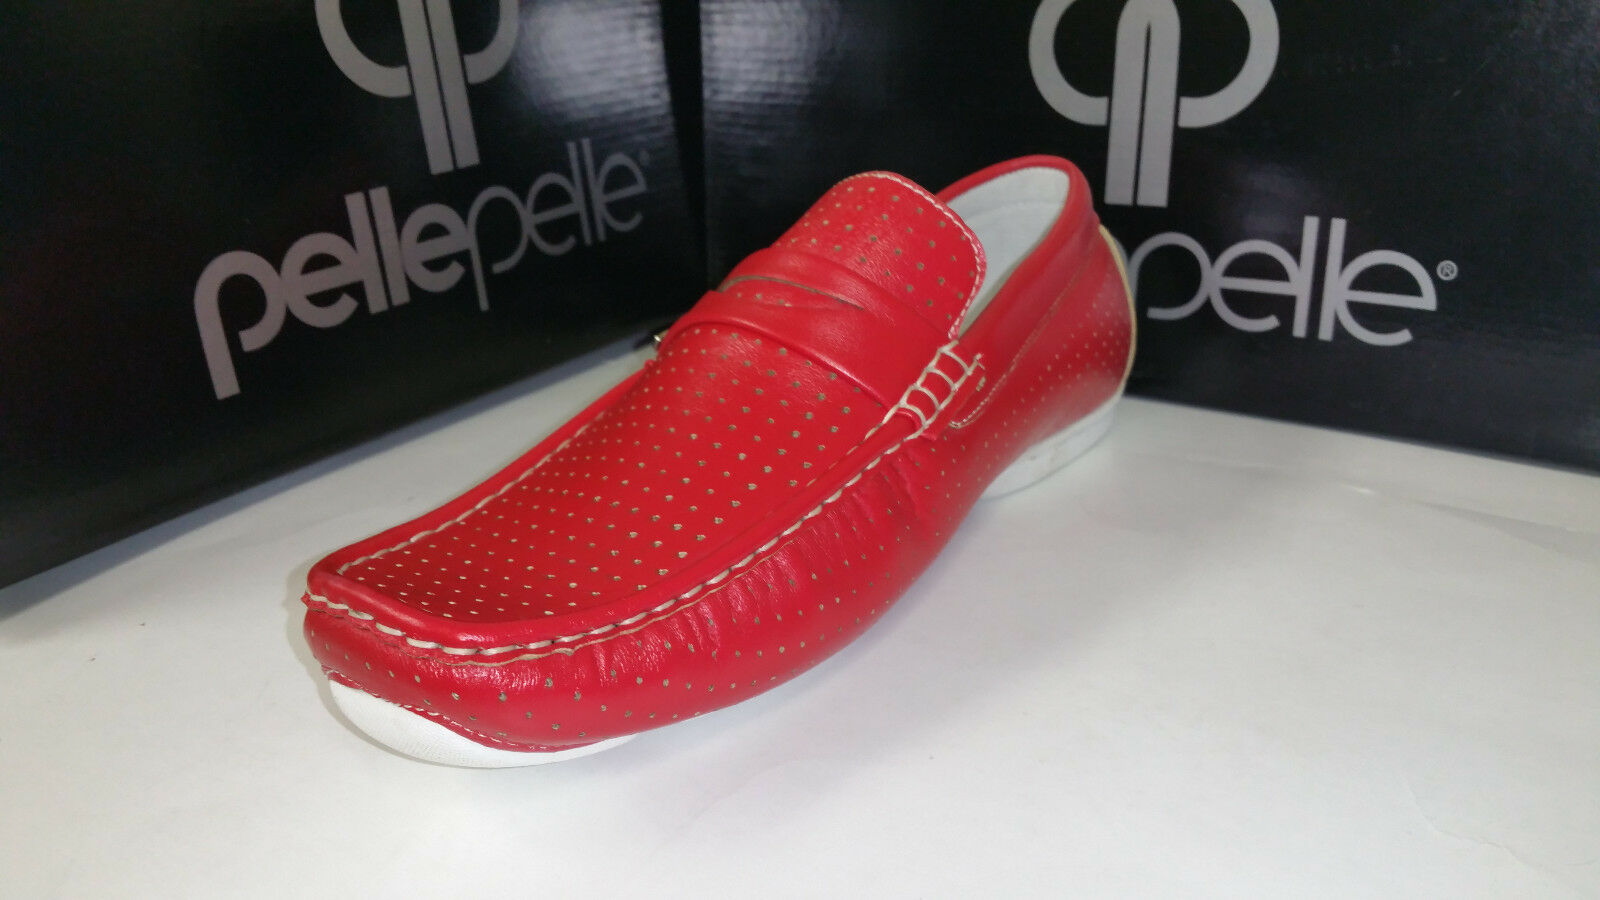 Pelle Pelle Red Leather Slip On Casual Loafer Boat Driving shoes size 7.5-12